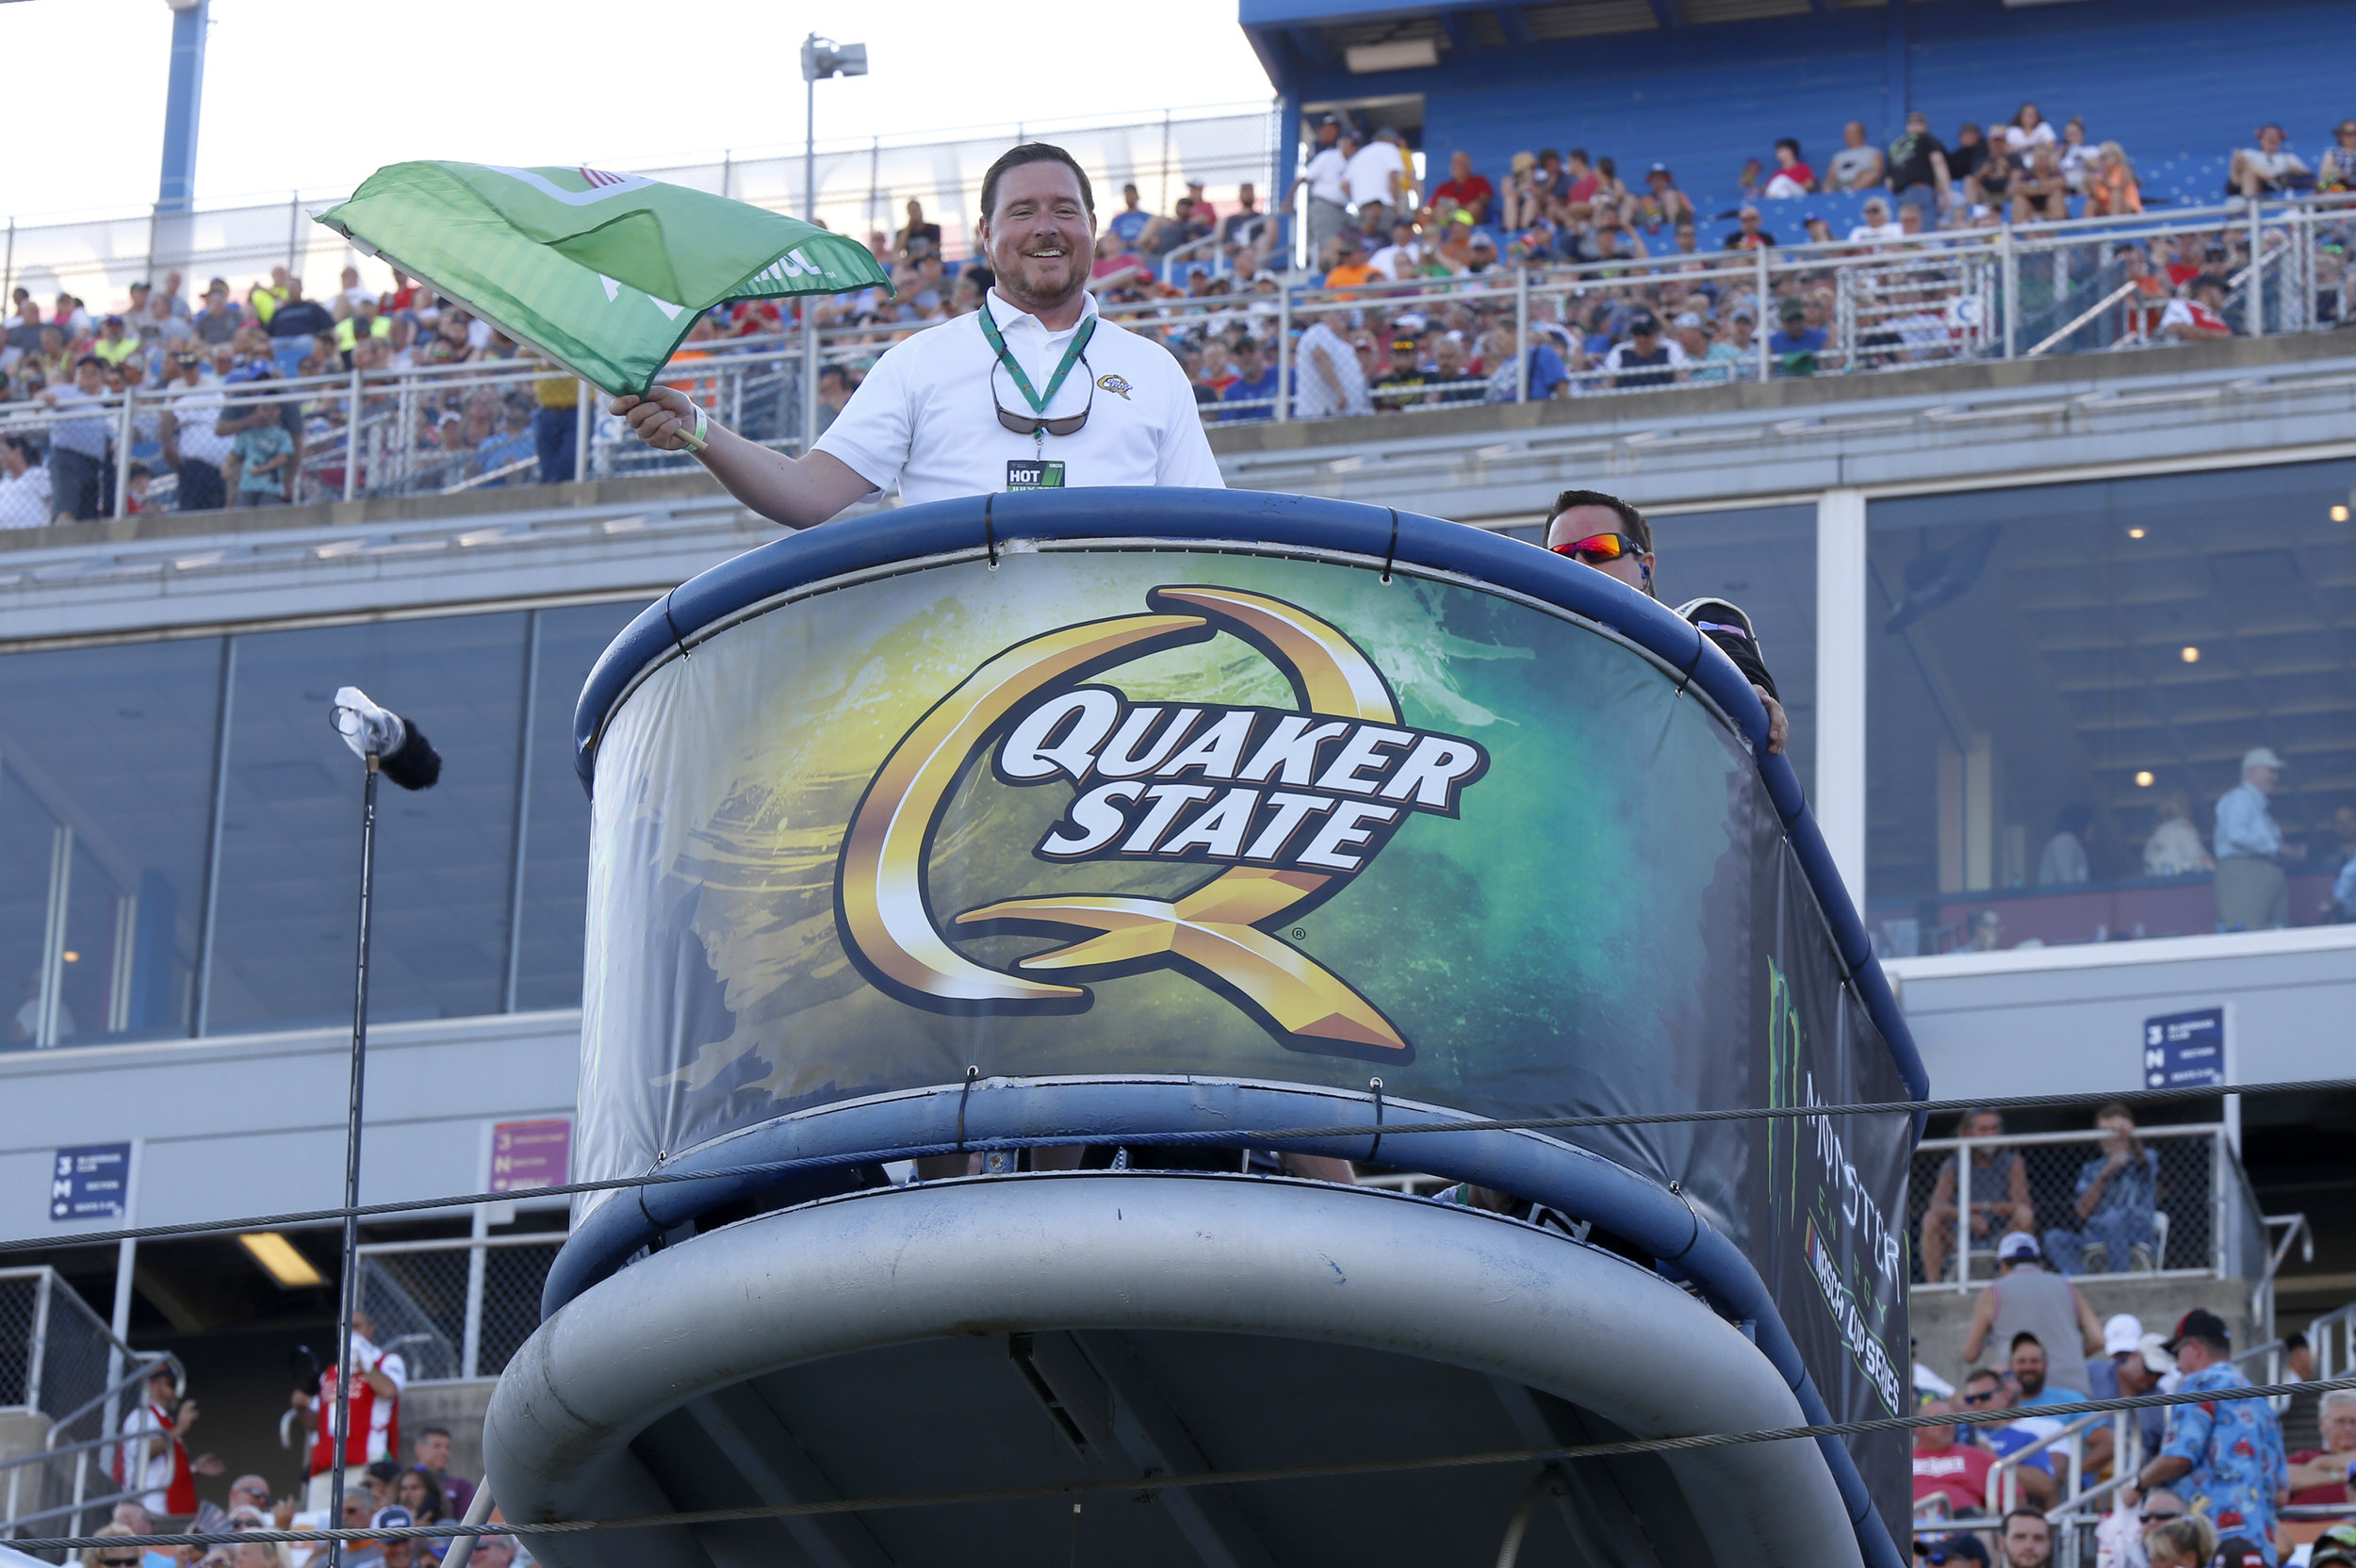 Starting the Quaker State 400 in style by waving the green flag.